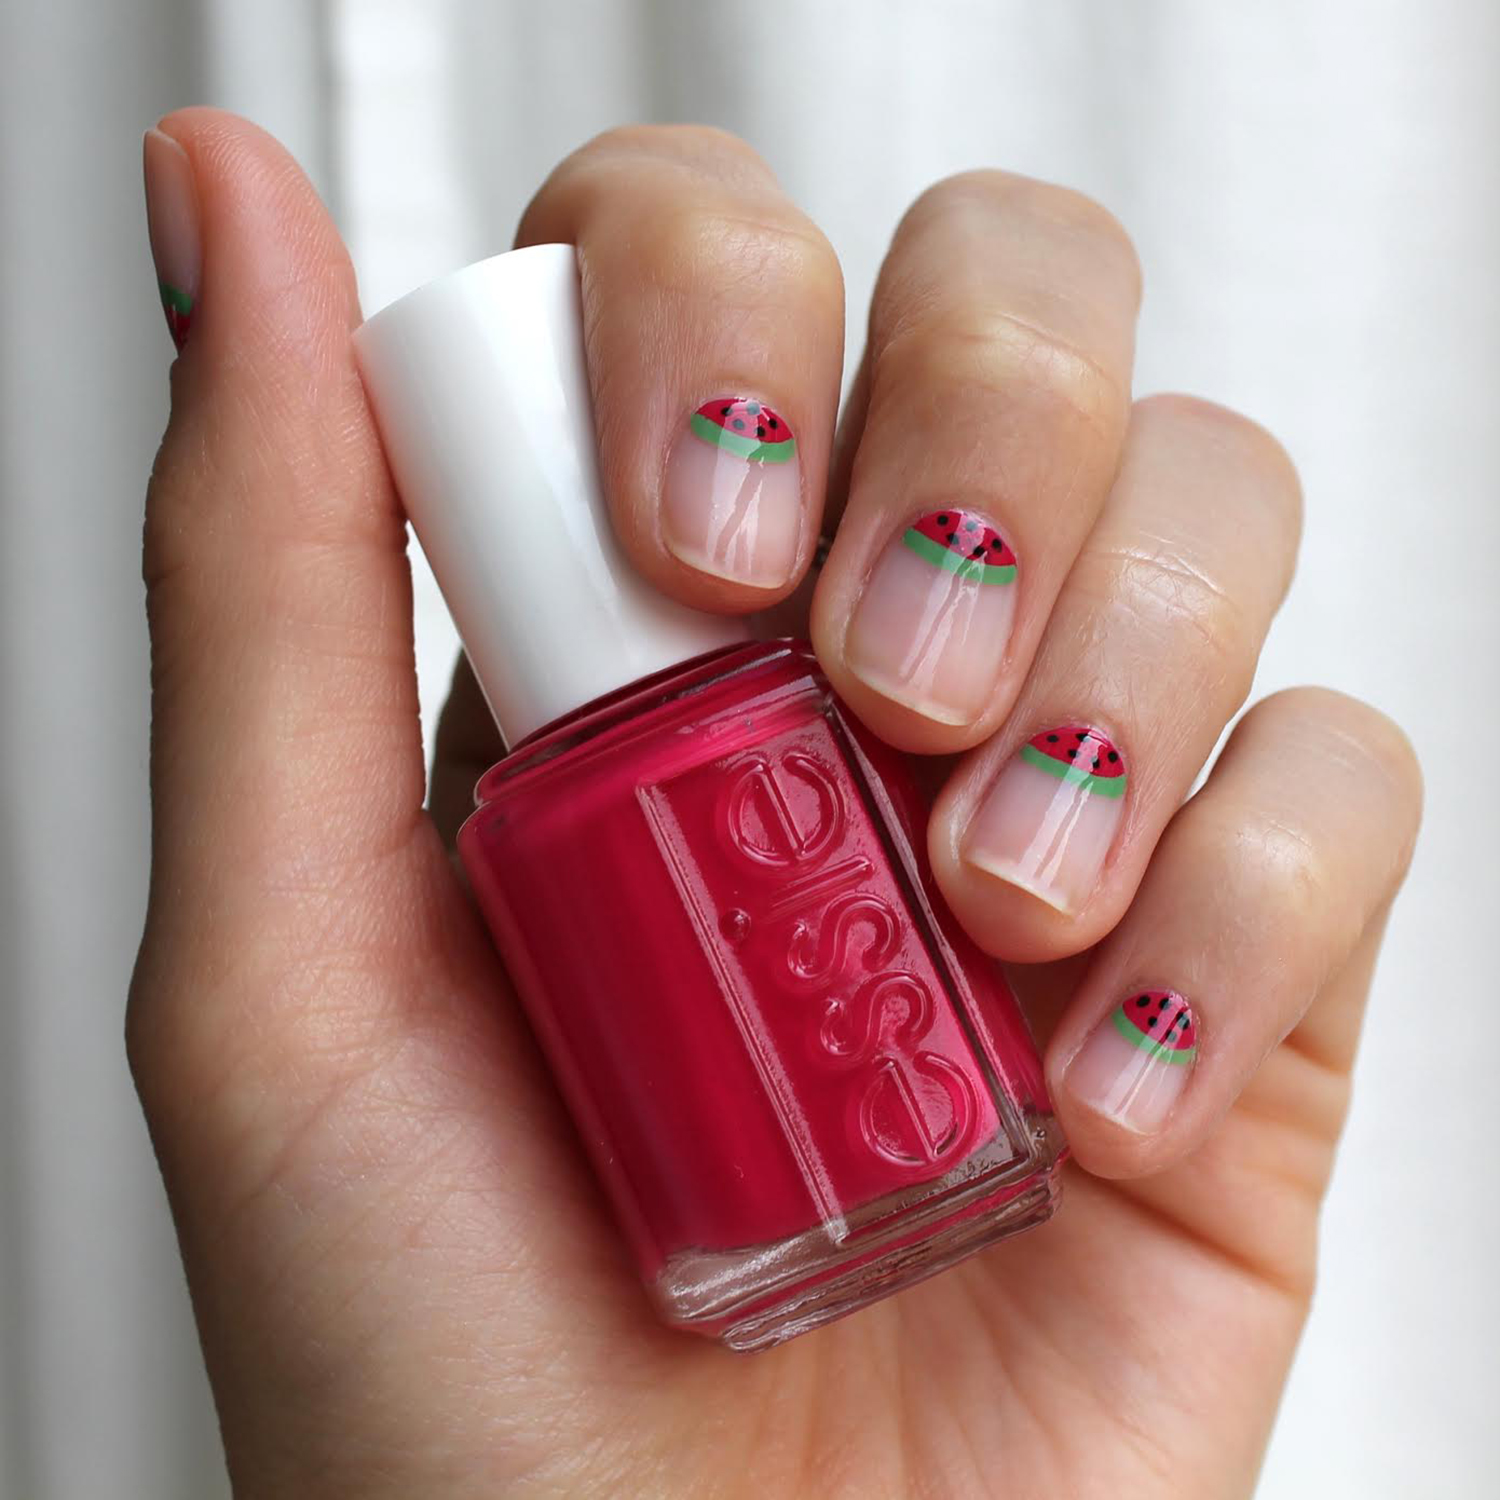 Recreate this gorgeous watermelon mani courtesy of essie in four simple steps.